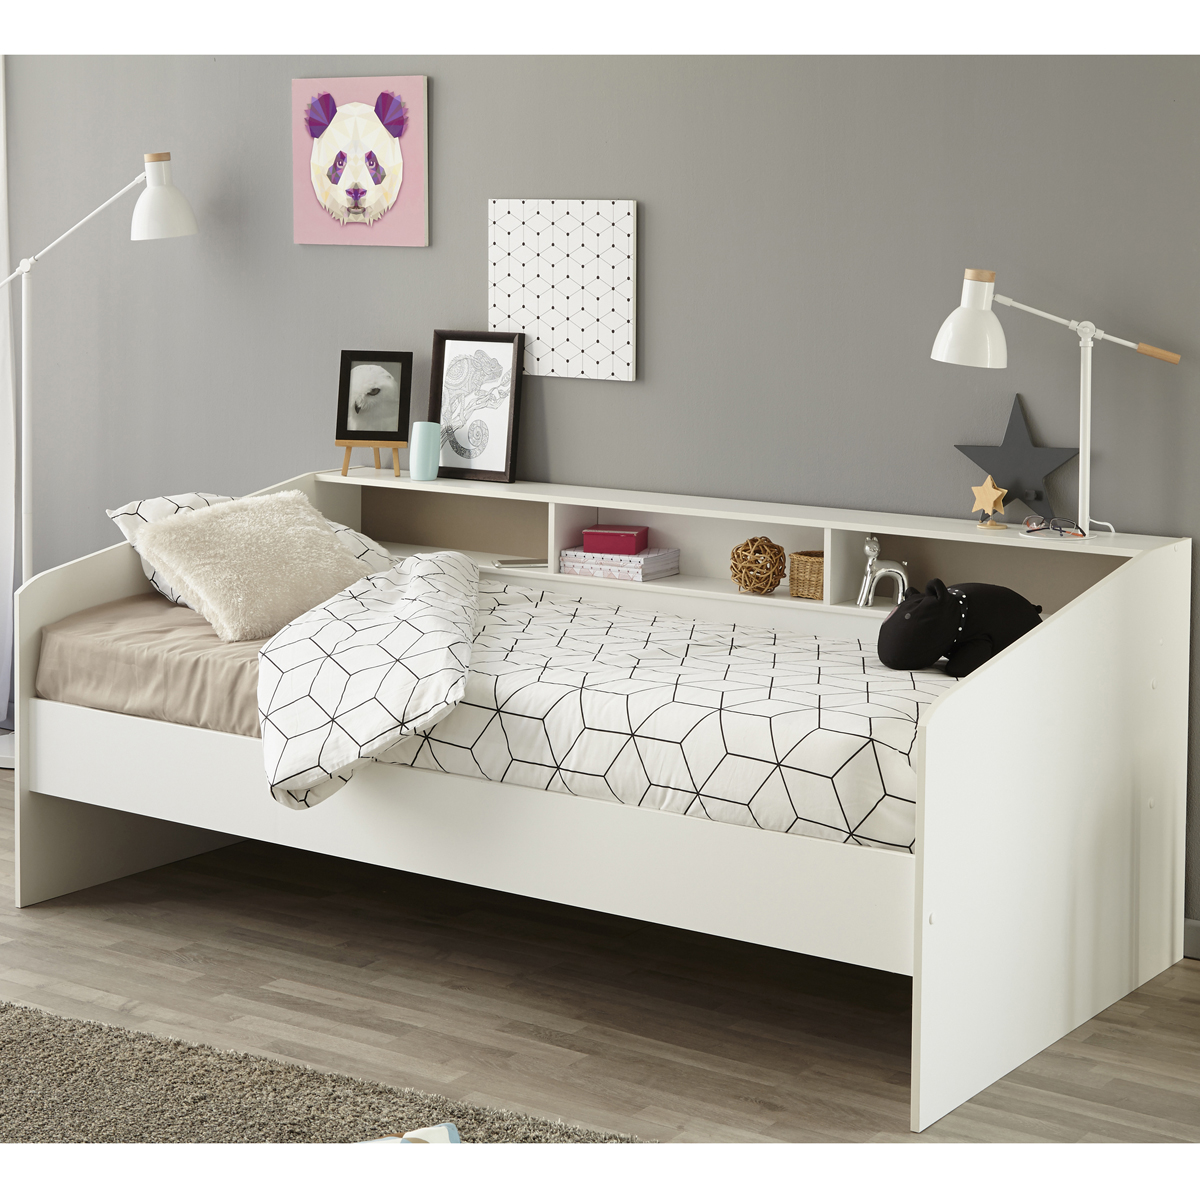 stauraumbett sleep 2 einzelbett 90x200 bett in wei mit ablage eur 169 05 picclick de. Black Bedroom Furniture Sets. Home Design Ideas